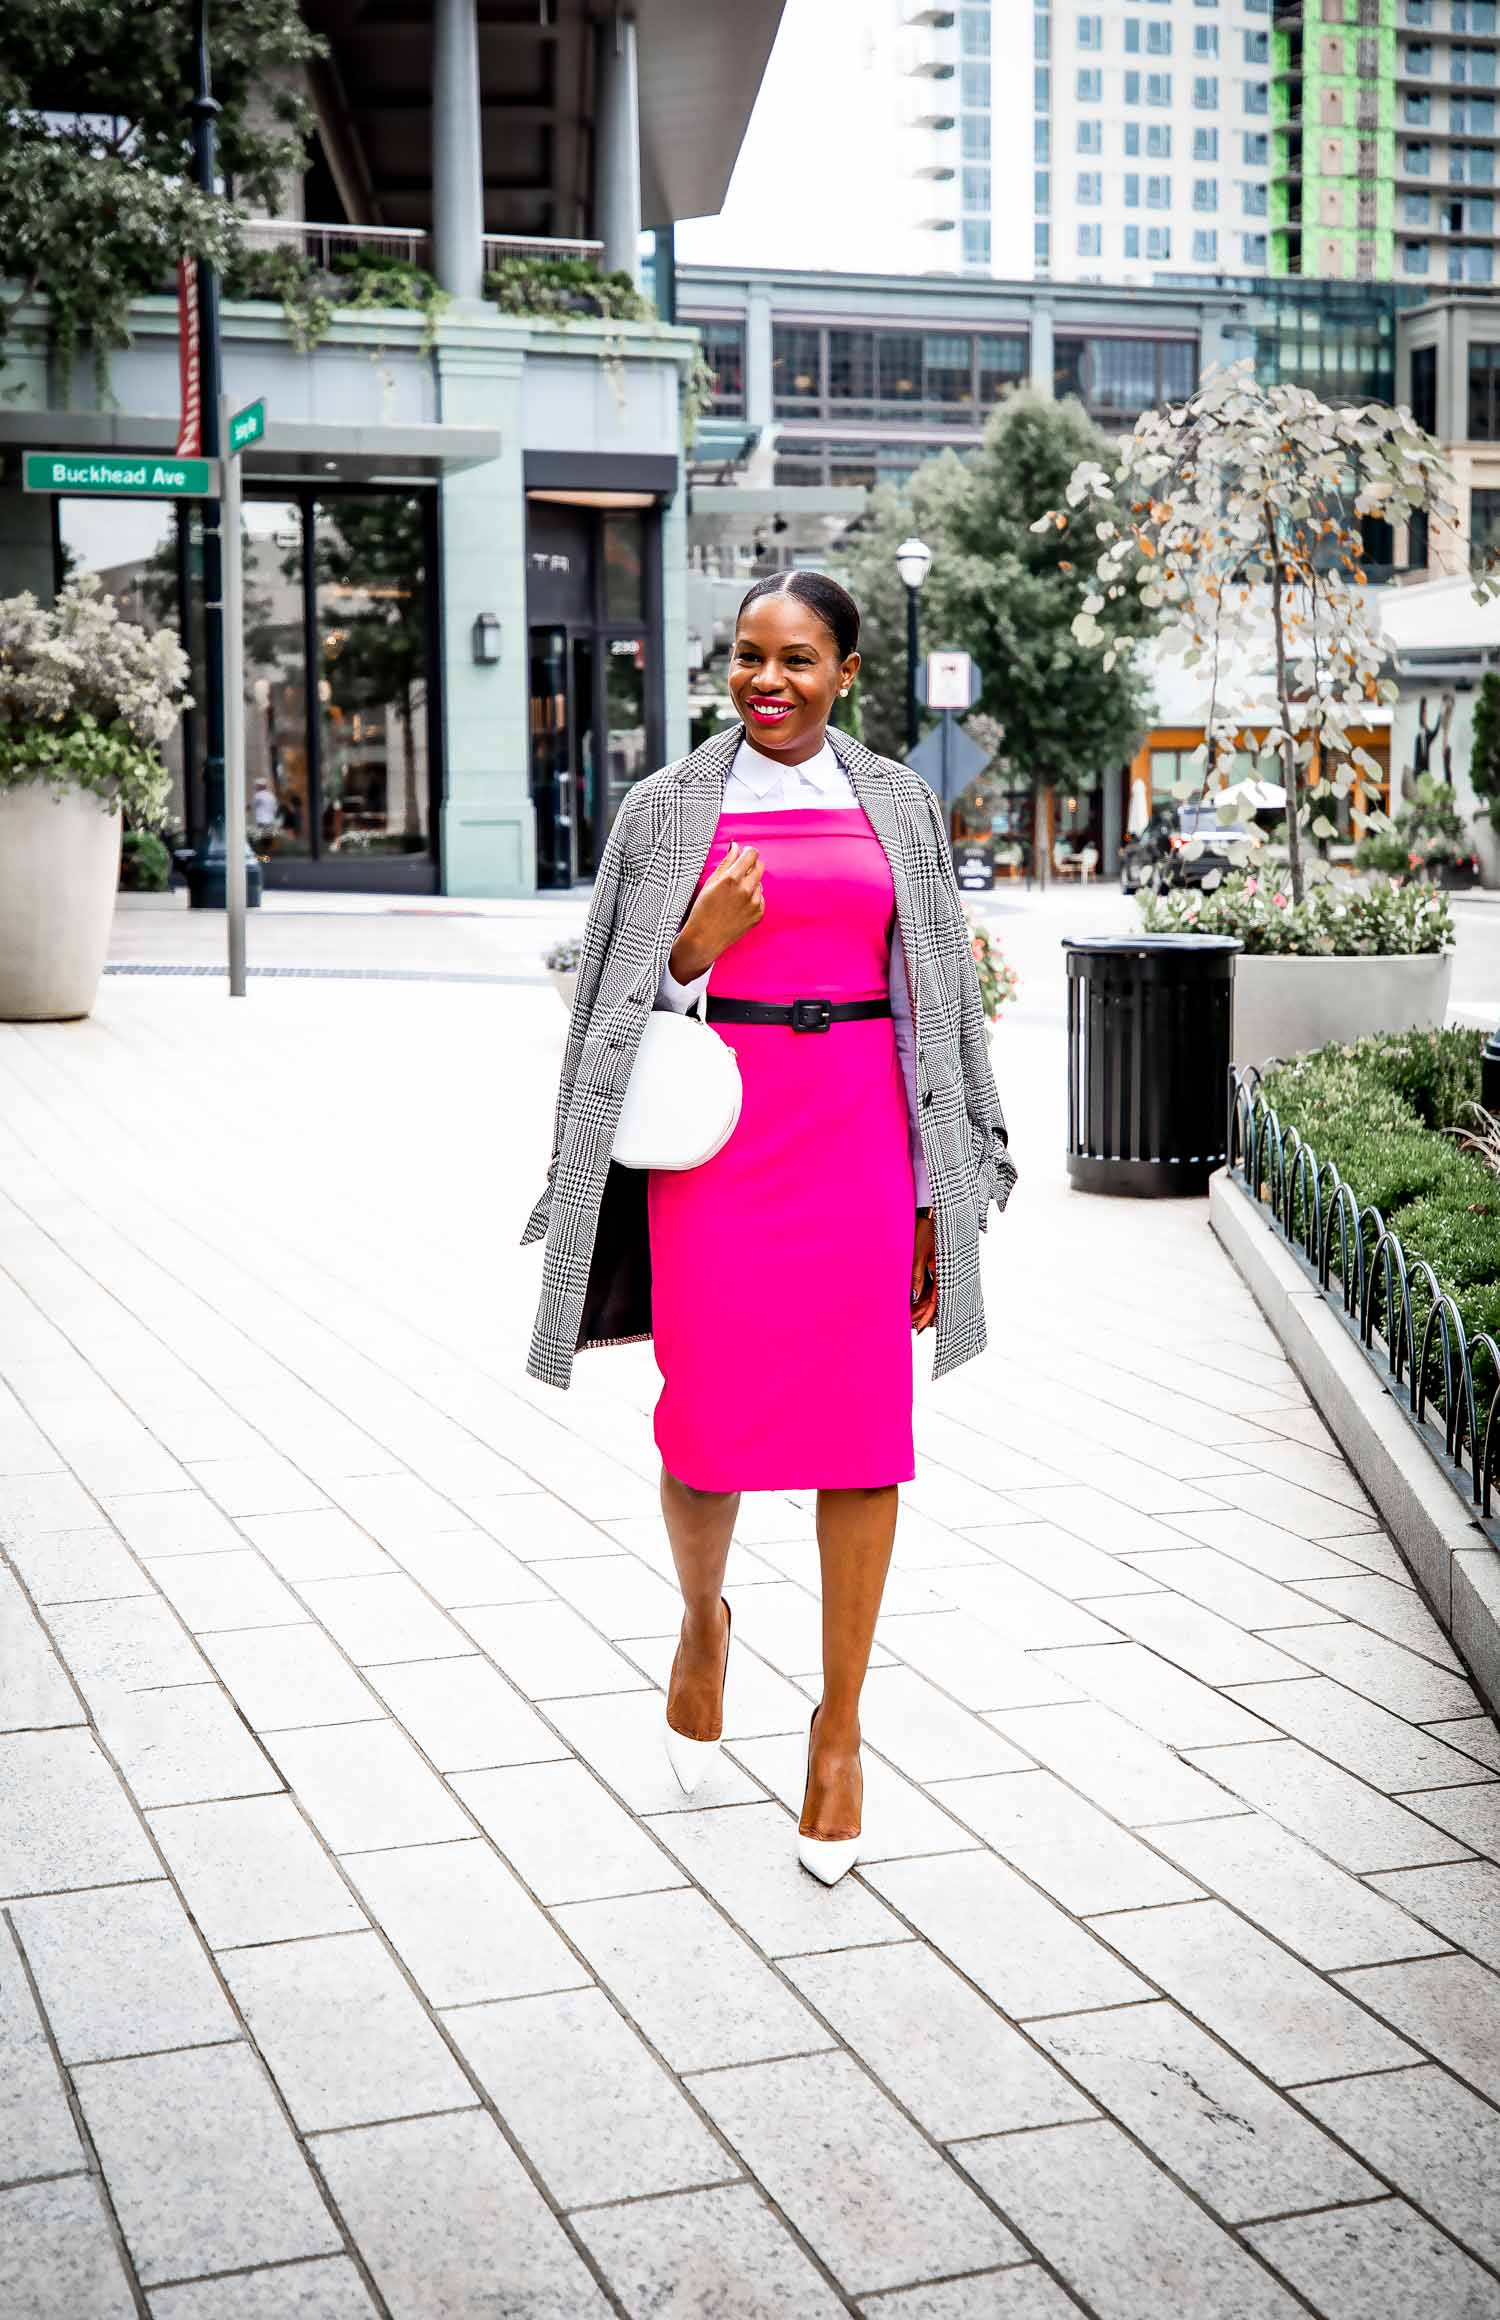 Fashion blogger Monica Awe-Etuk wearing pink in support of Pink October, Breast Cancer Awareness Month.